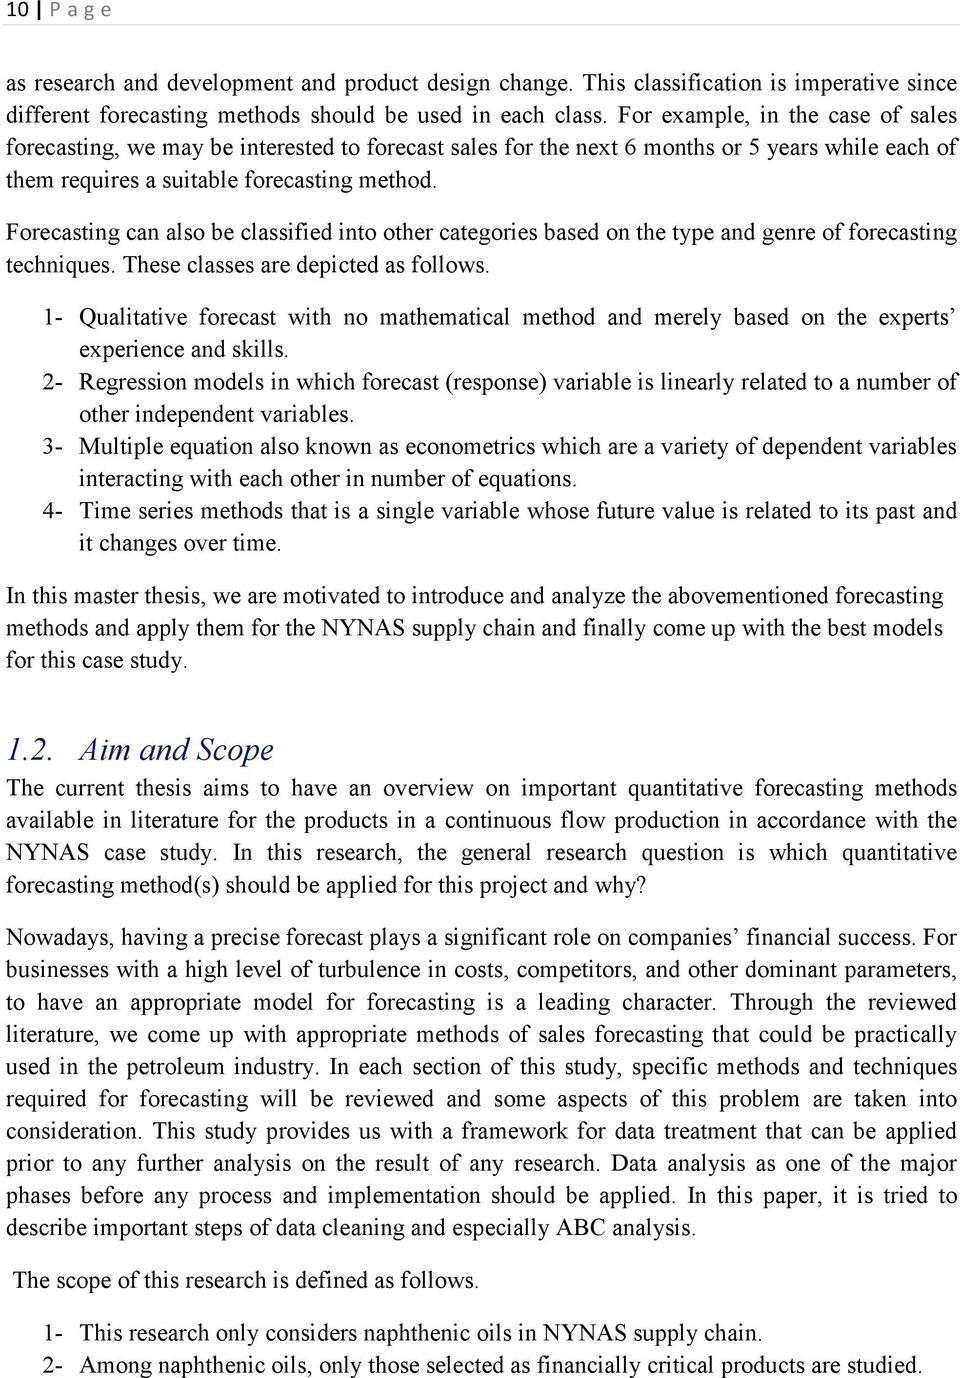 Overview of Quantitative Forecasting Methods on Sales of